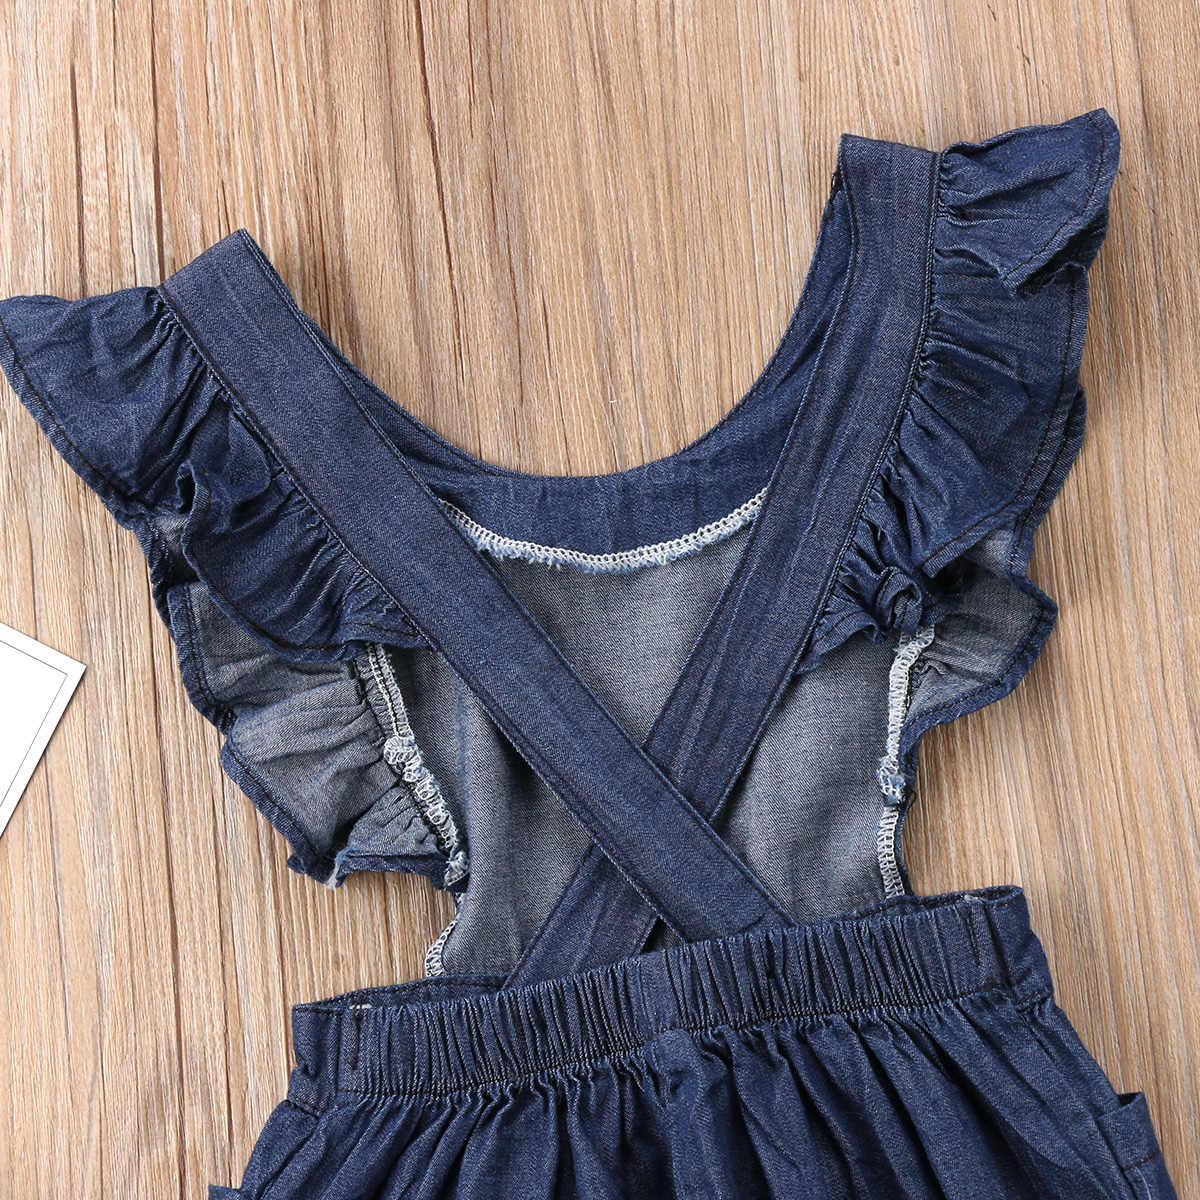 3ae2863d6533 ... Fashion Summer Cute Kids Baby Girls Denim One Piece Loose Overalls  Casual Cross Jumpsuit Romper Outfits ...